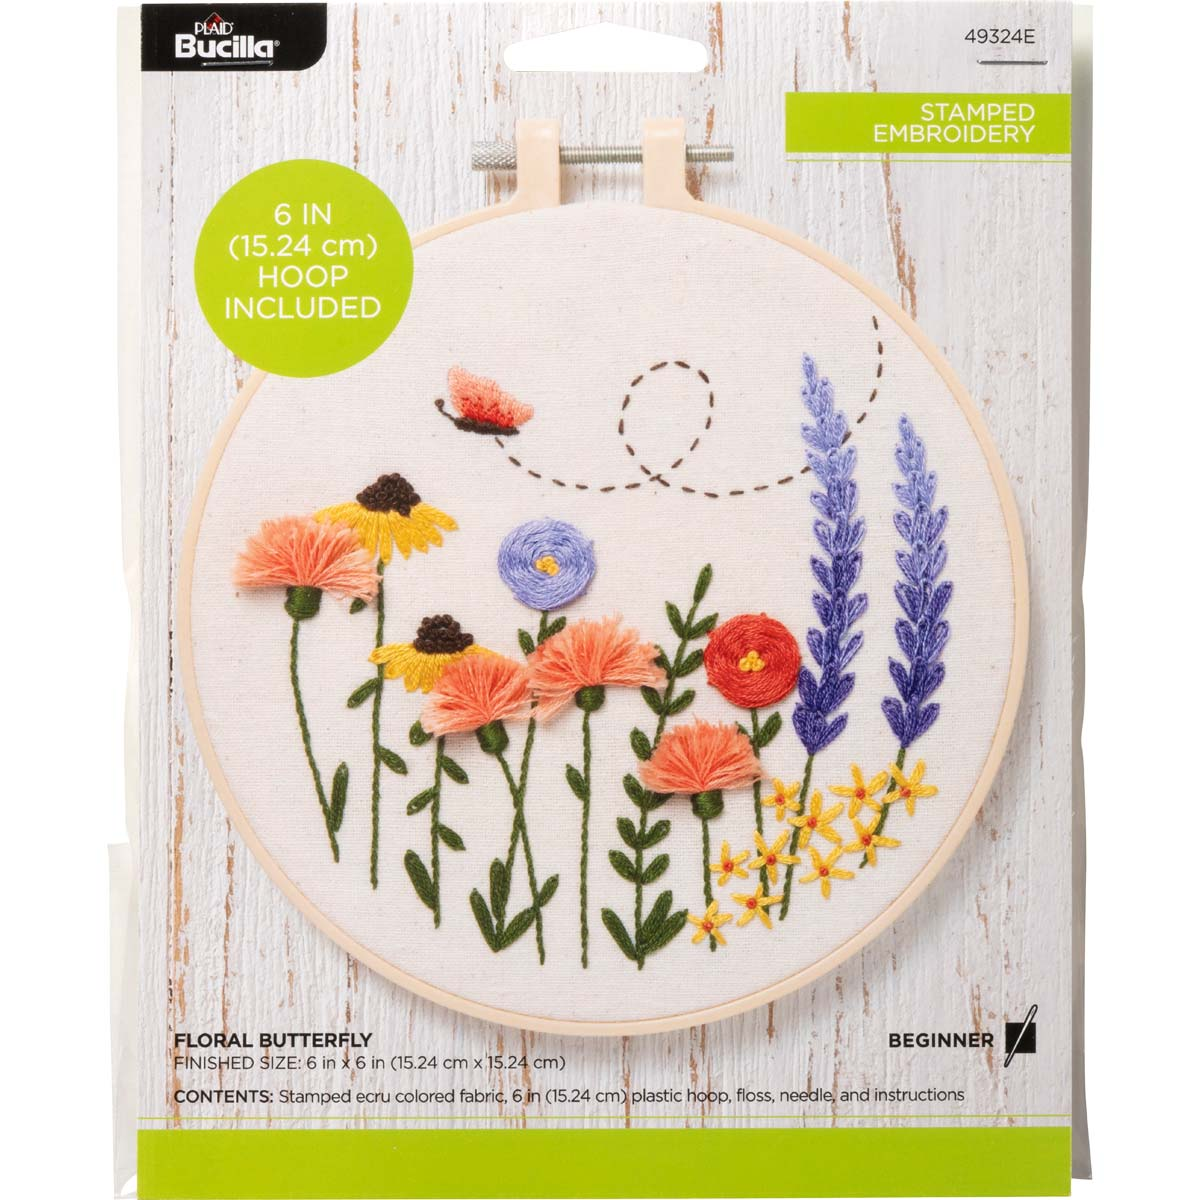 Bucilla ® Stamped Embroidery - Floral Butterfly - 49324E